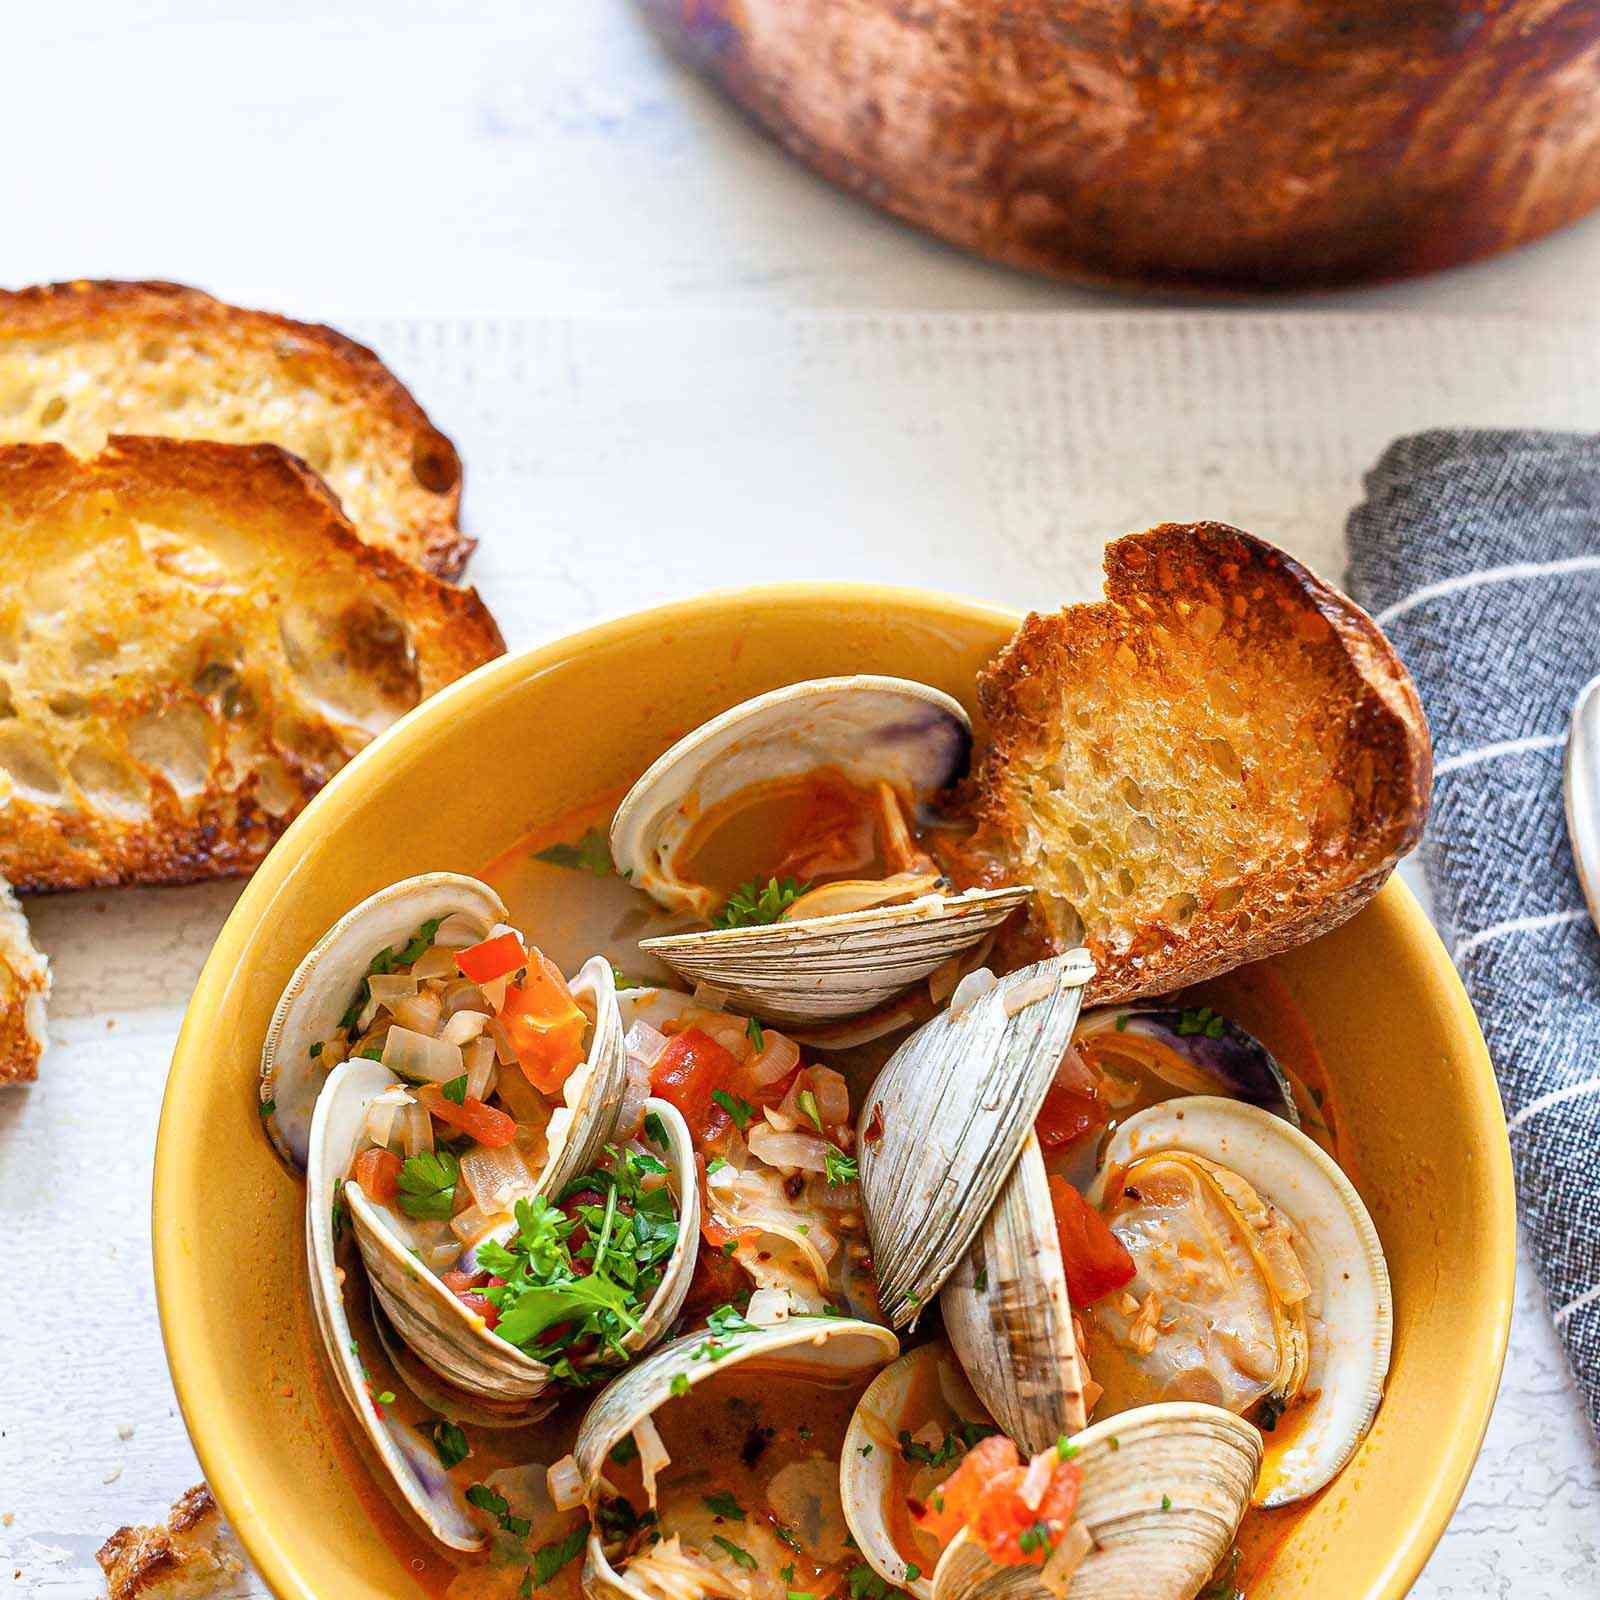 A yellow bowl of steamed clams with chorizo, grilled garlic bread and a stockpot of more brothy clams.